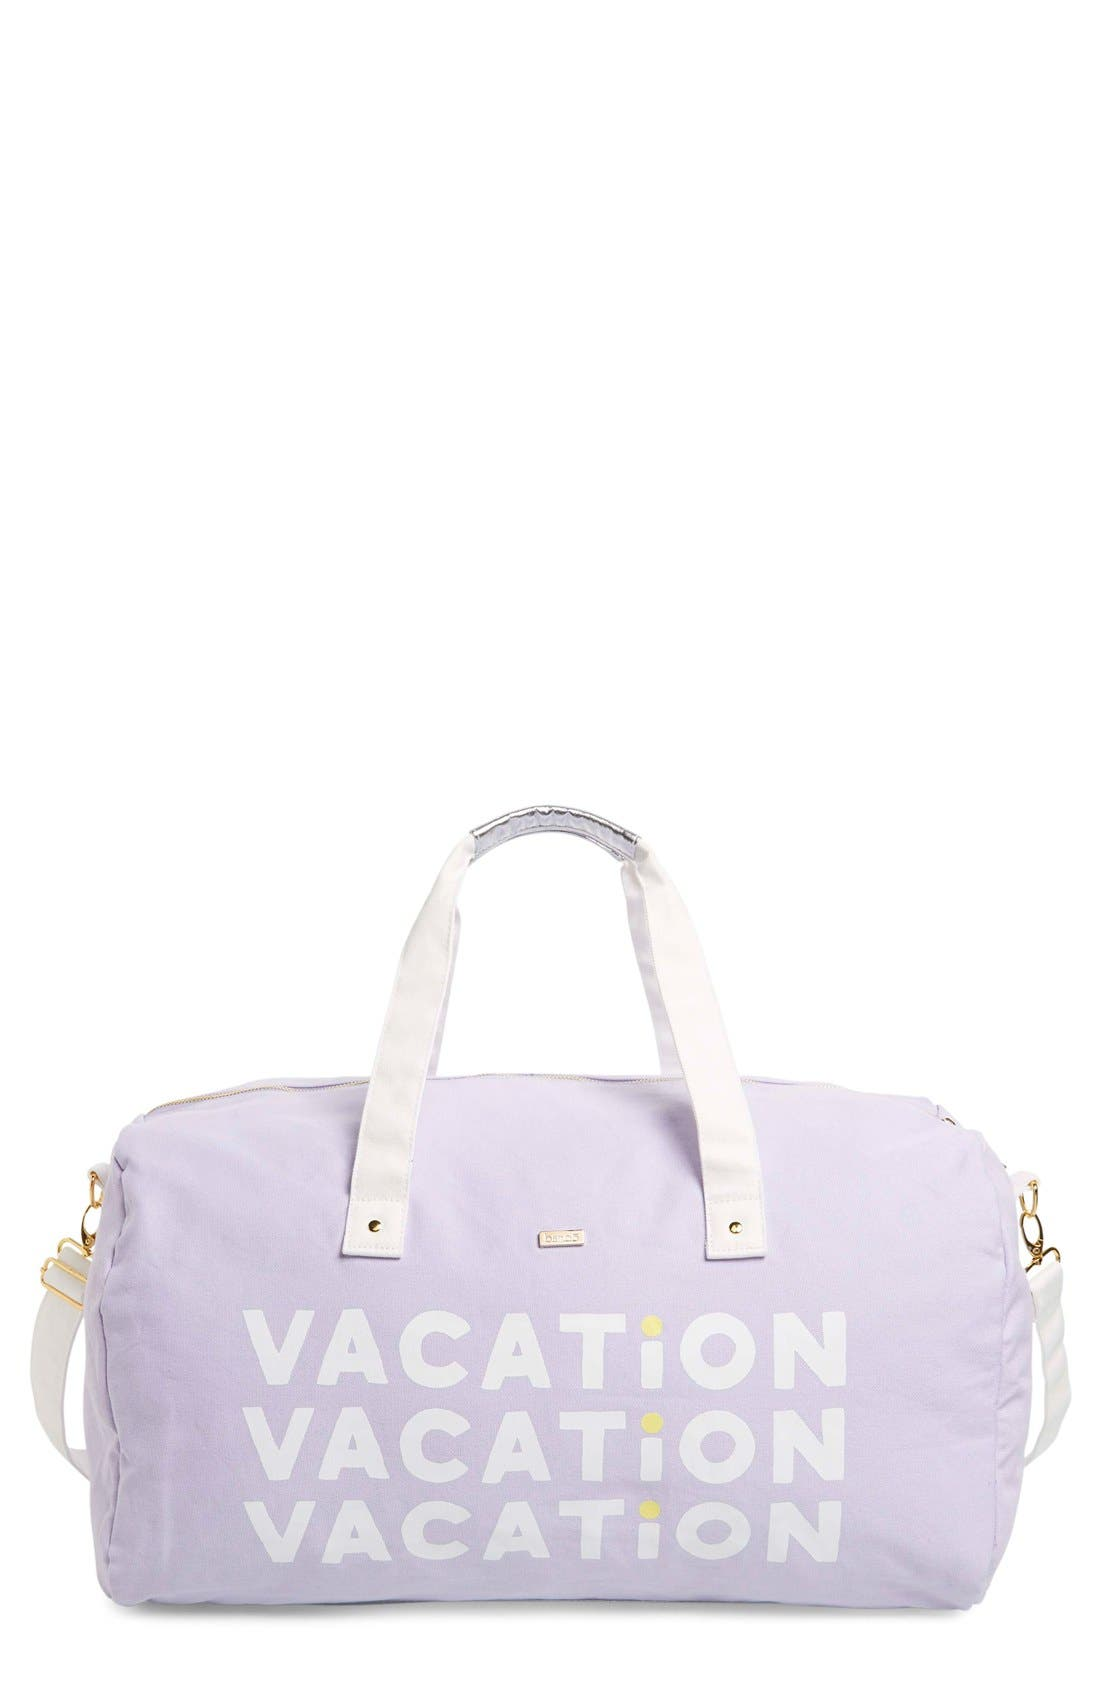 'Vacation Vacation Vacation' Canvas Duffel,                             Main thumbnail 1, color,                             Purple